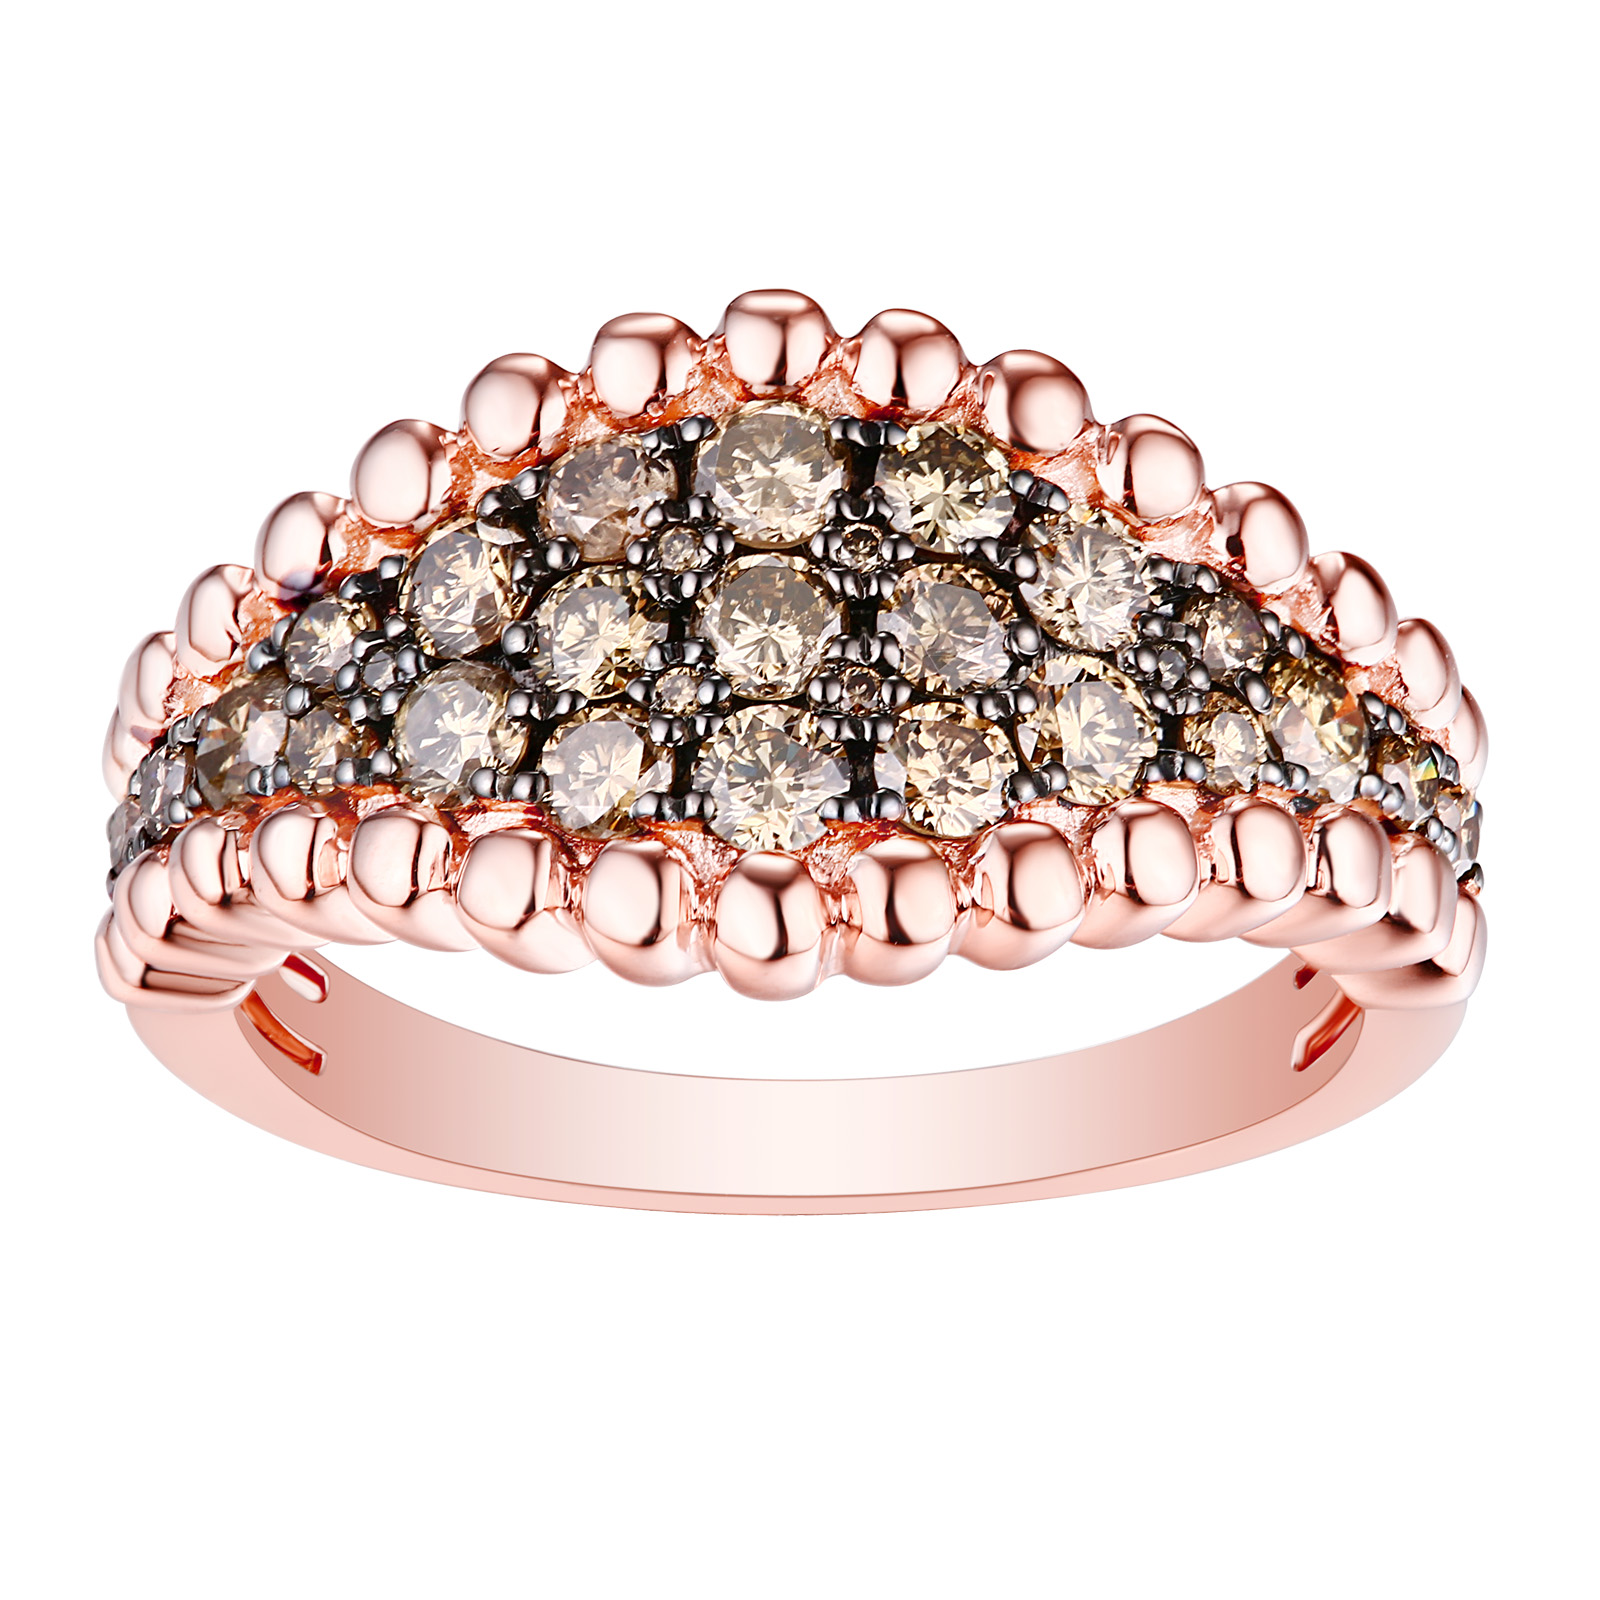 R26175BRN- 14K Rose Gold Diamond Ring, 0.99 TCW